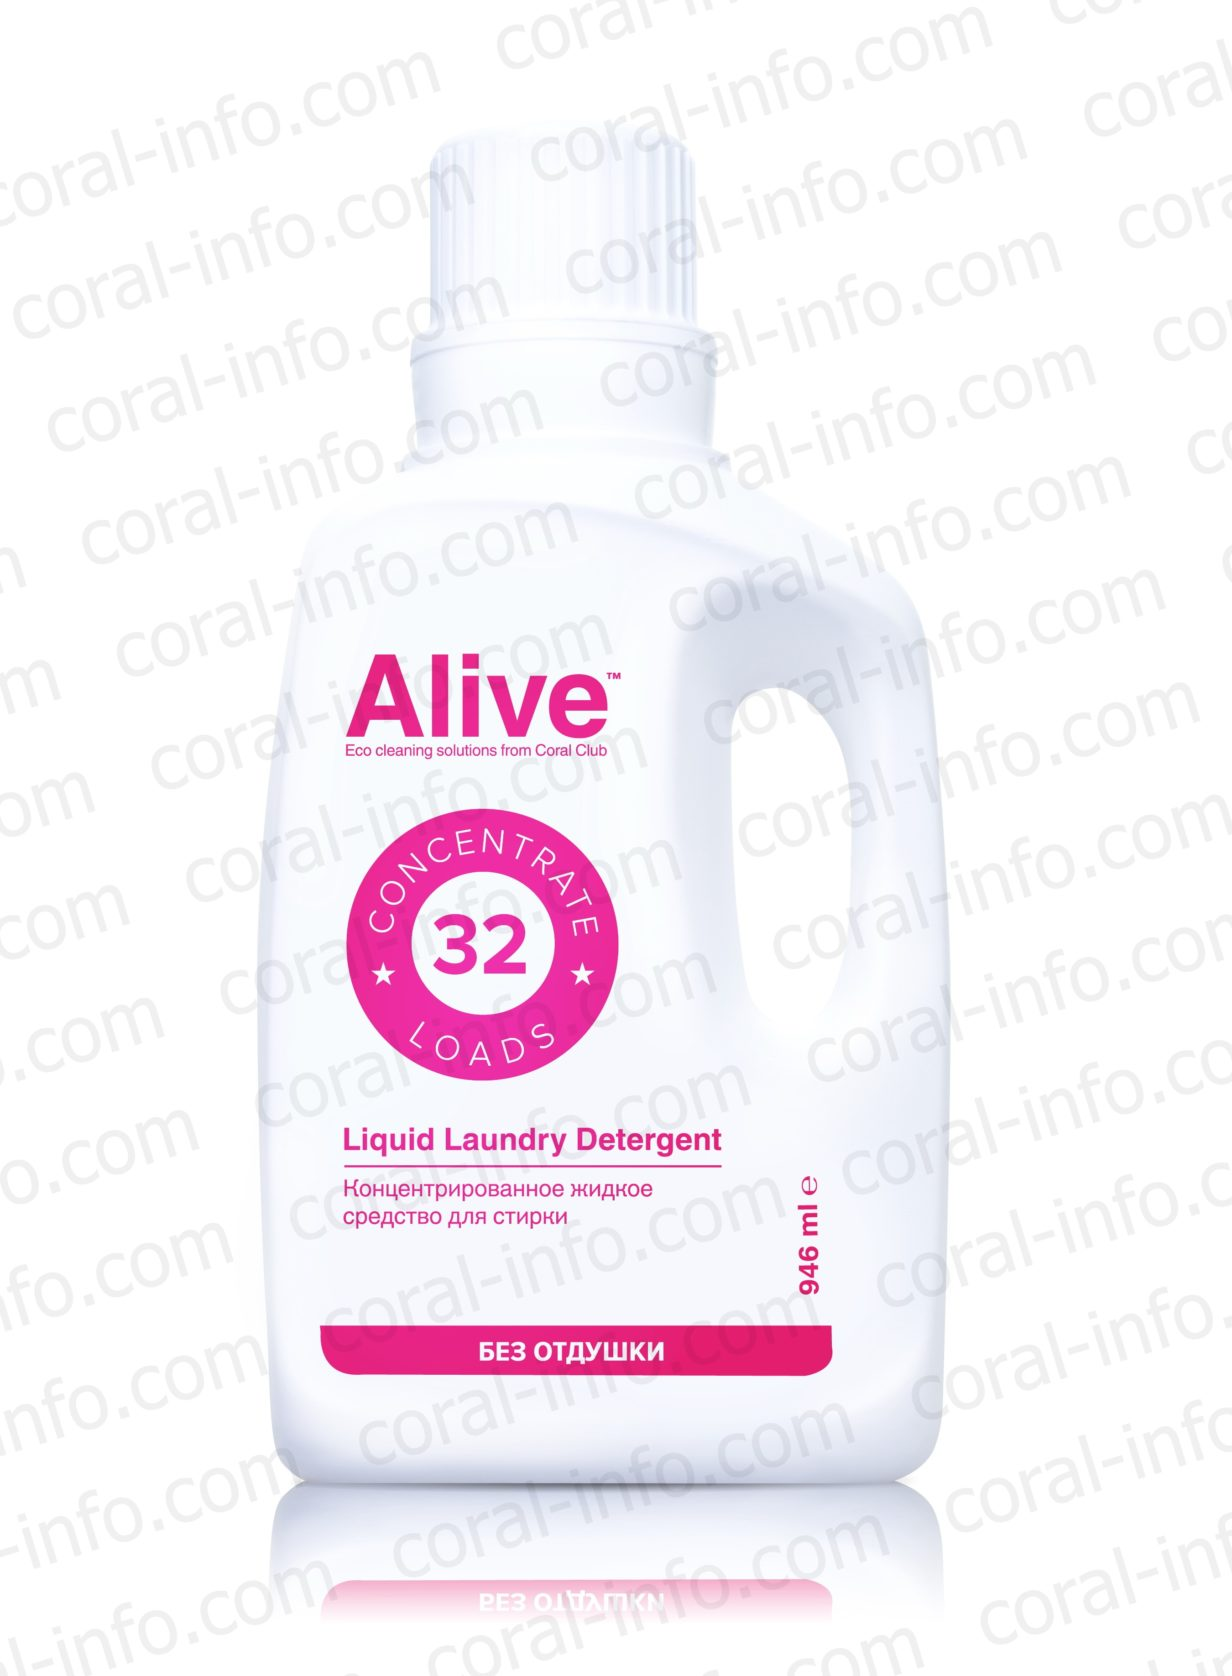 Alive liquid laundry